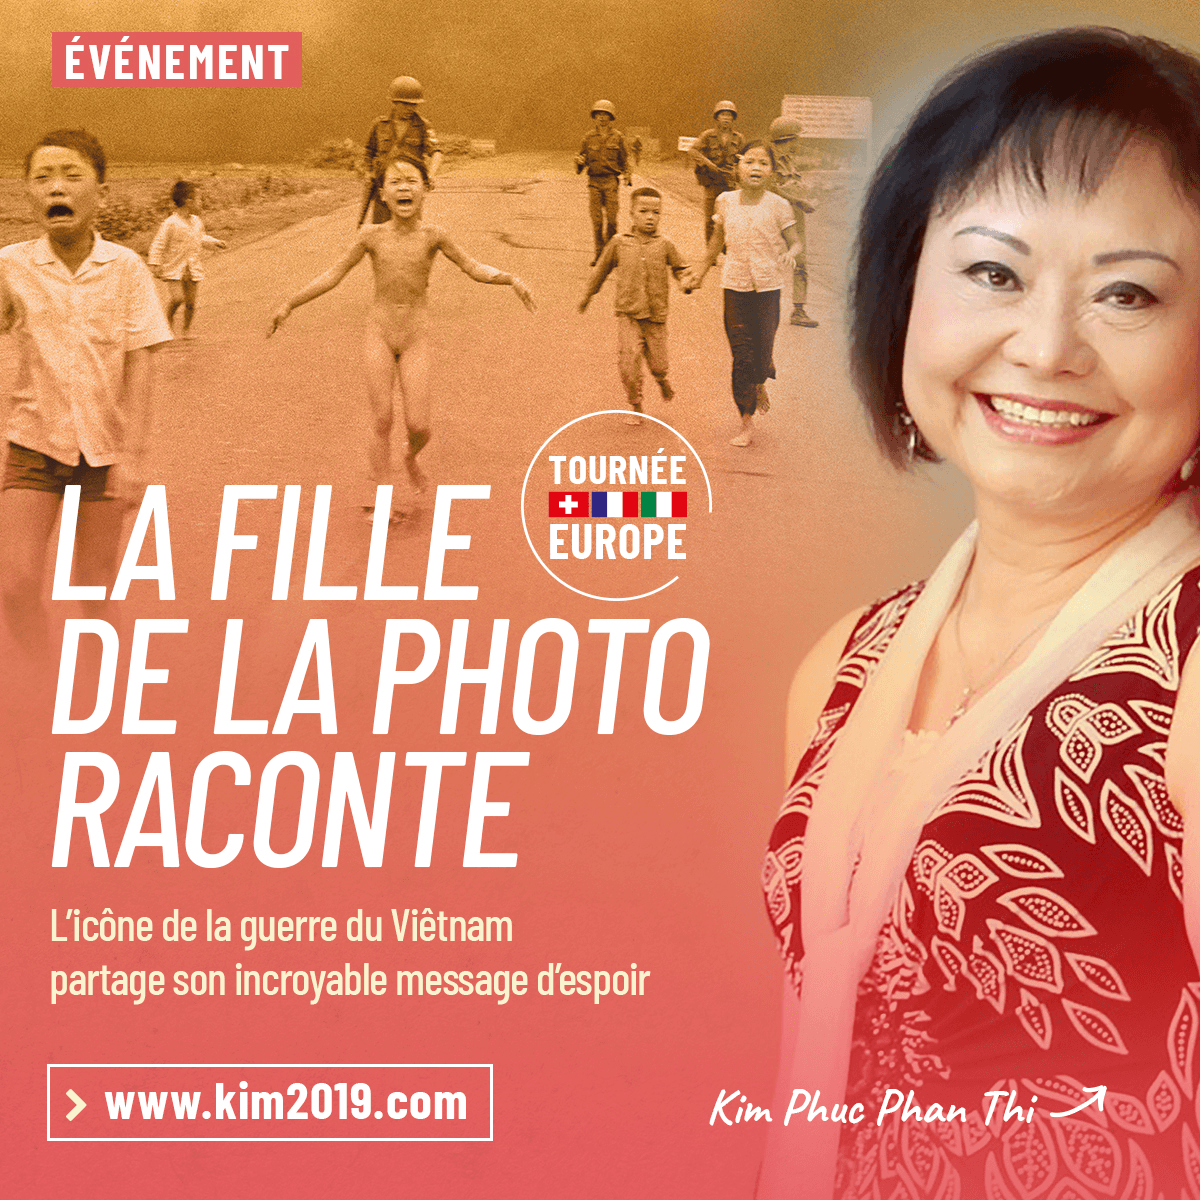 Kim Phuc Phan Thi, la fille de la photo raconte